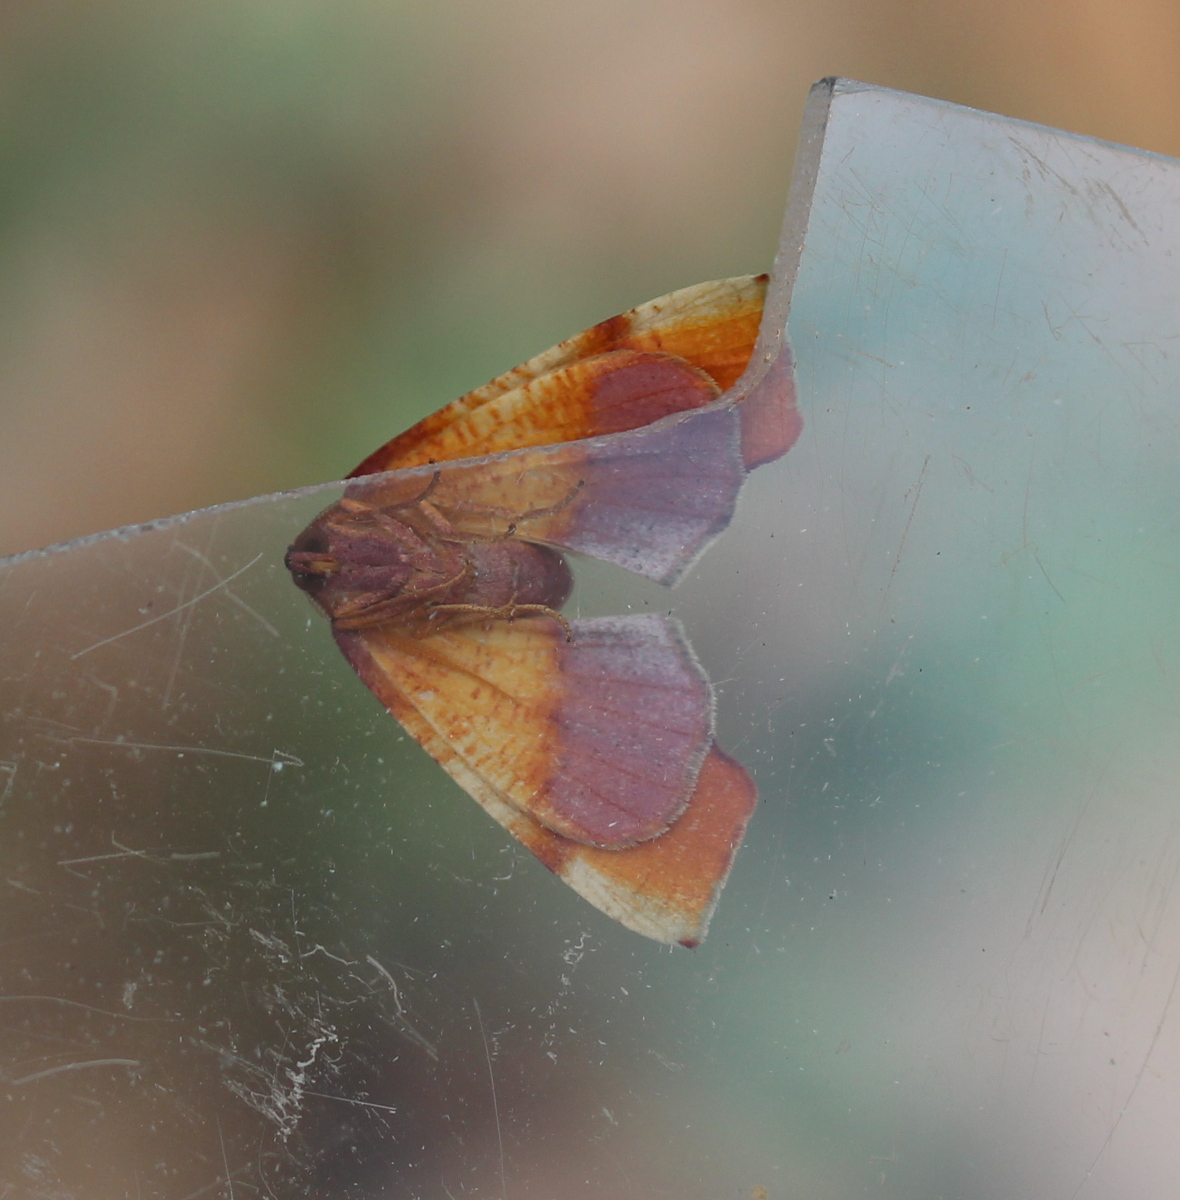 Ventral view of same moth, showing similar colors